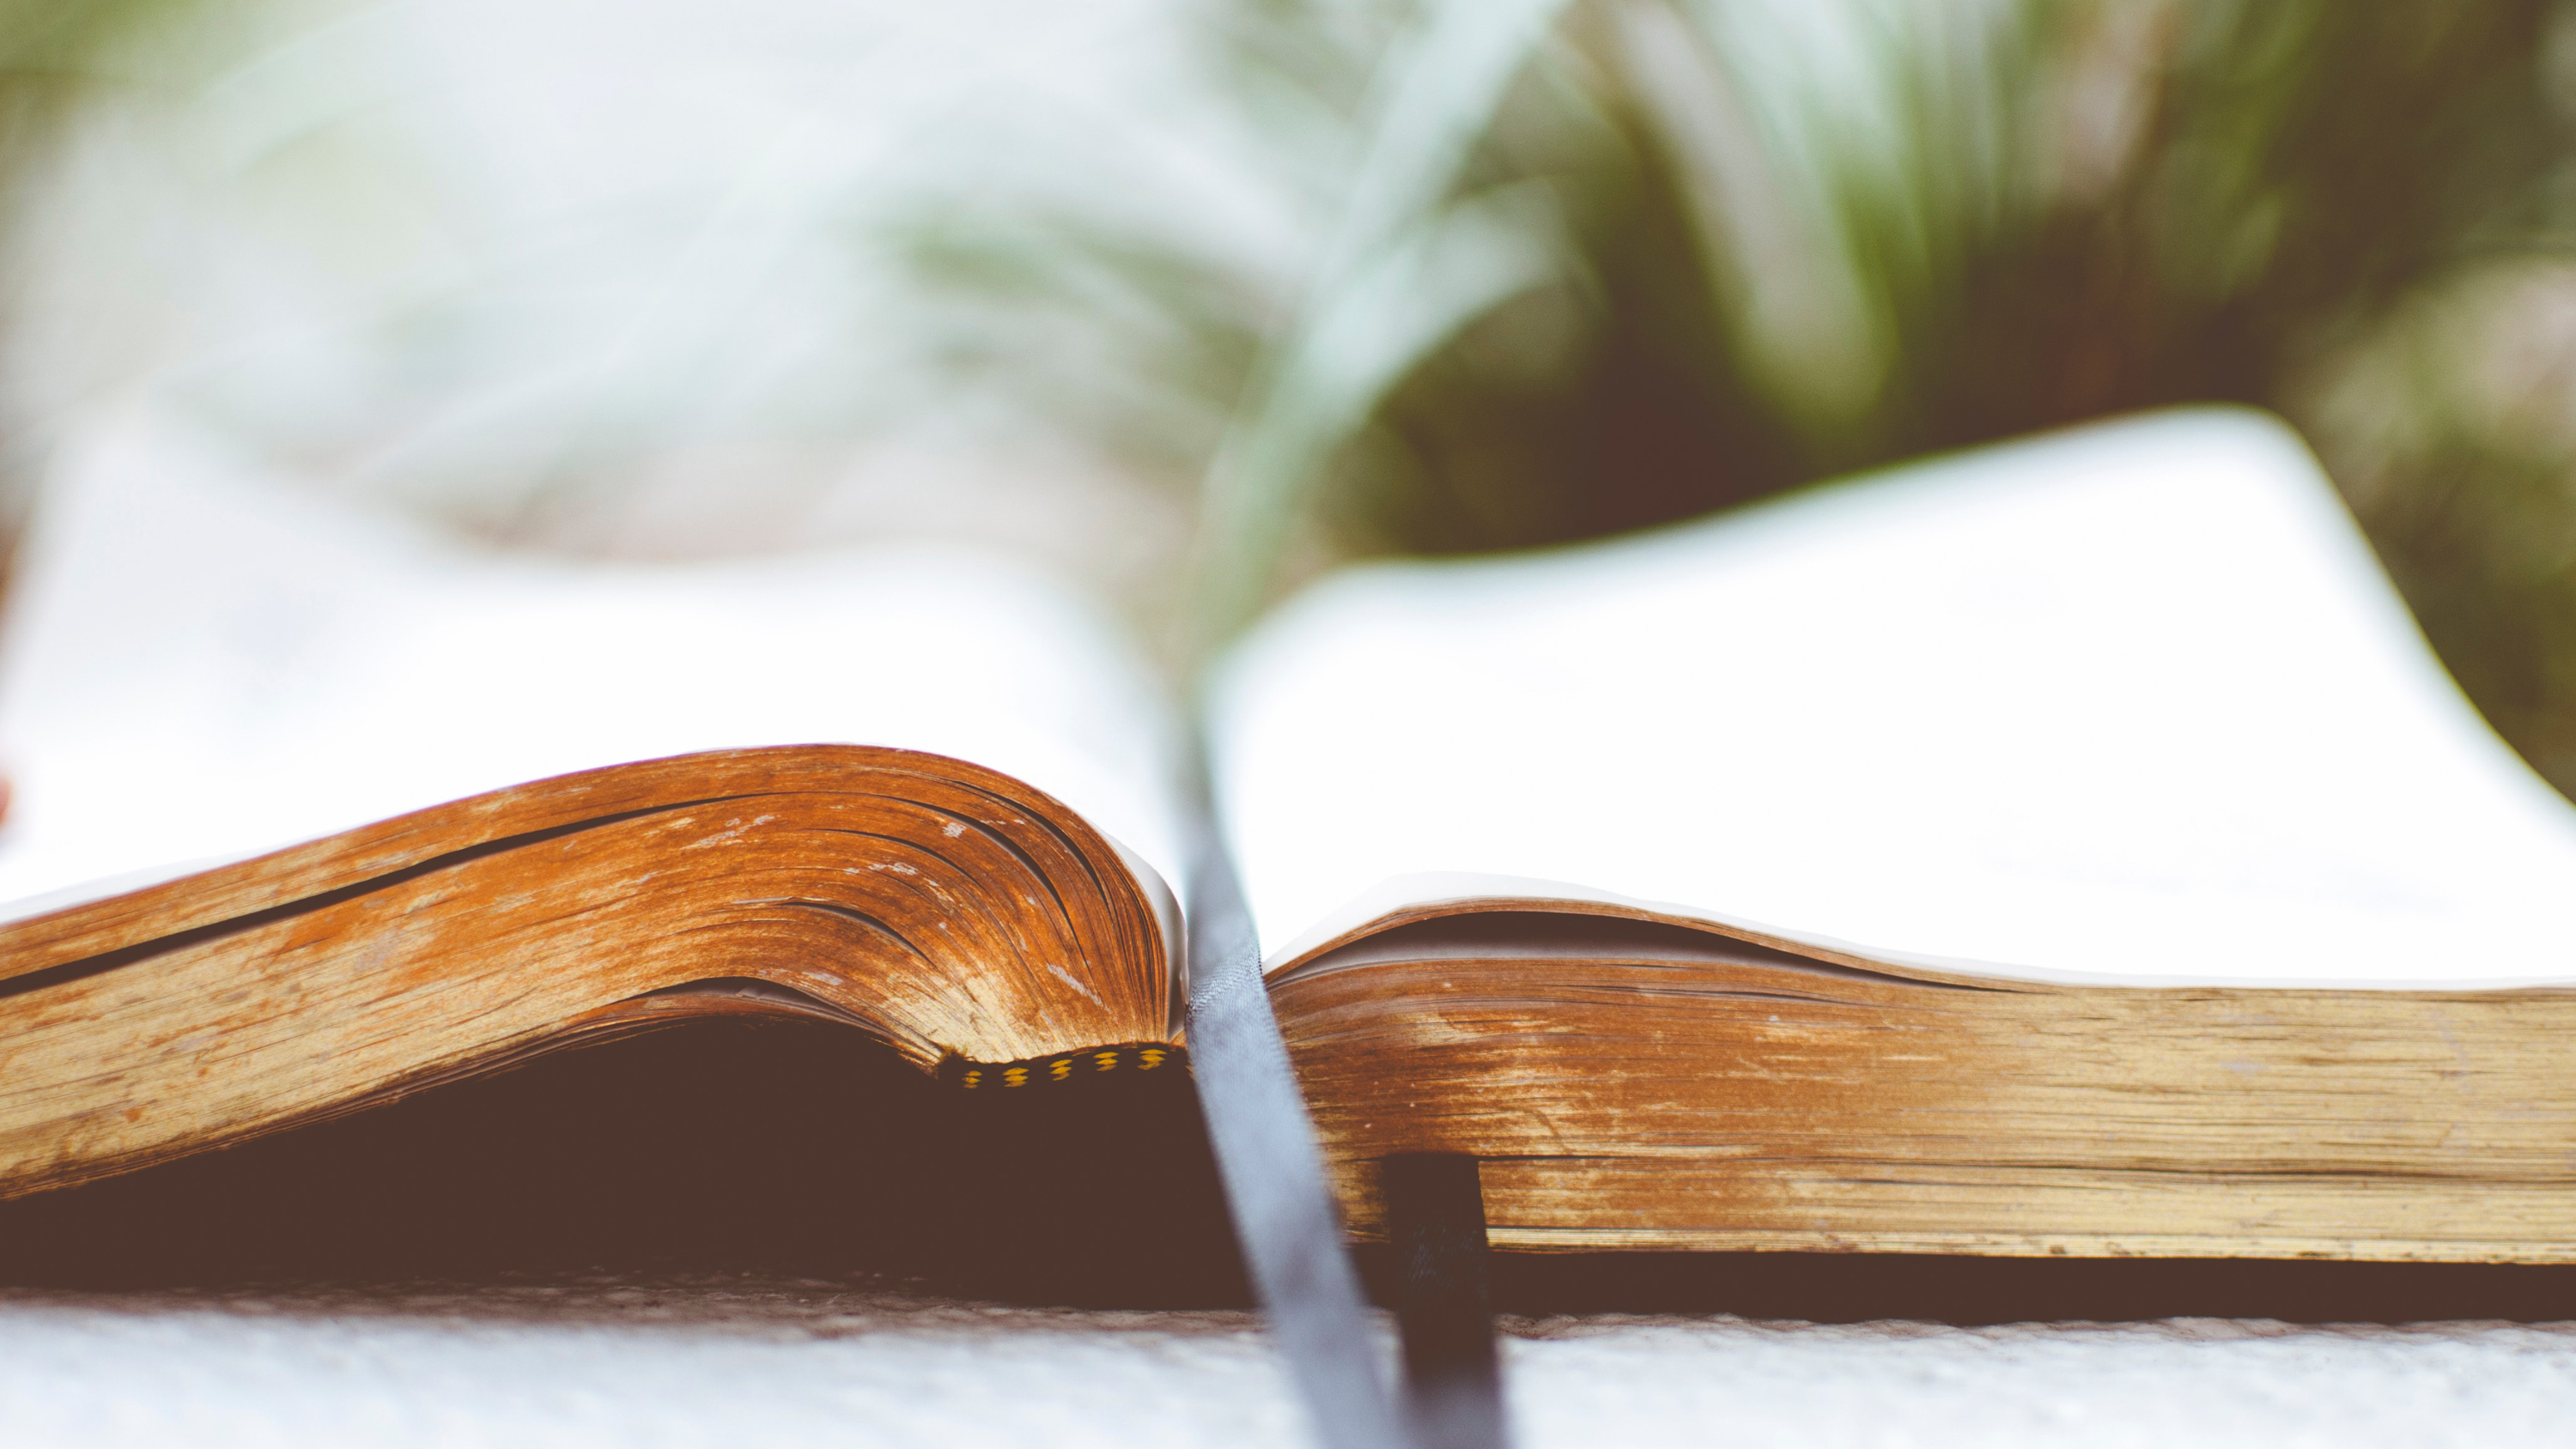 A Bible sits open with a ribbon bookmark running down the middle.